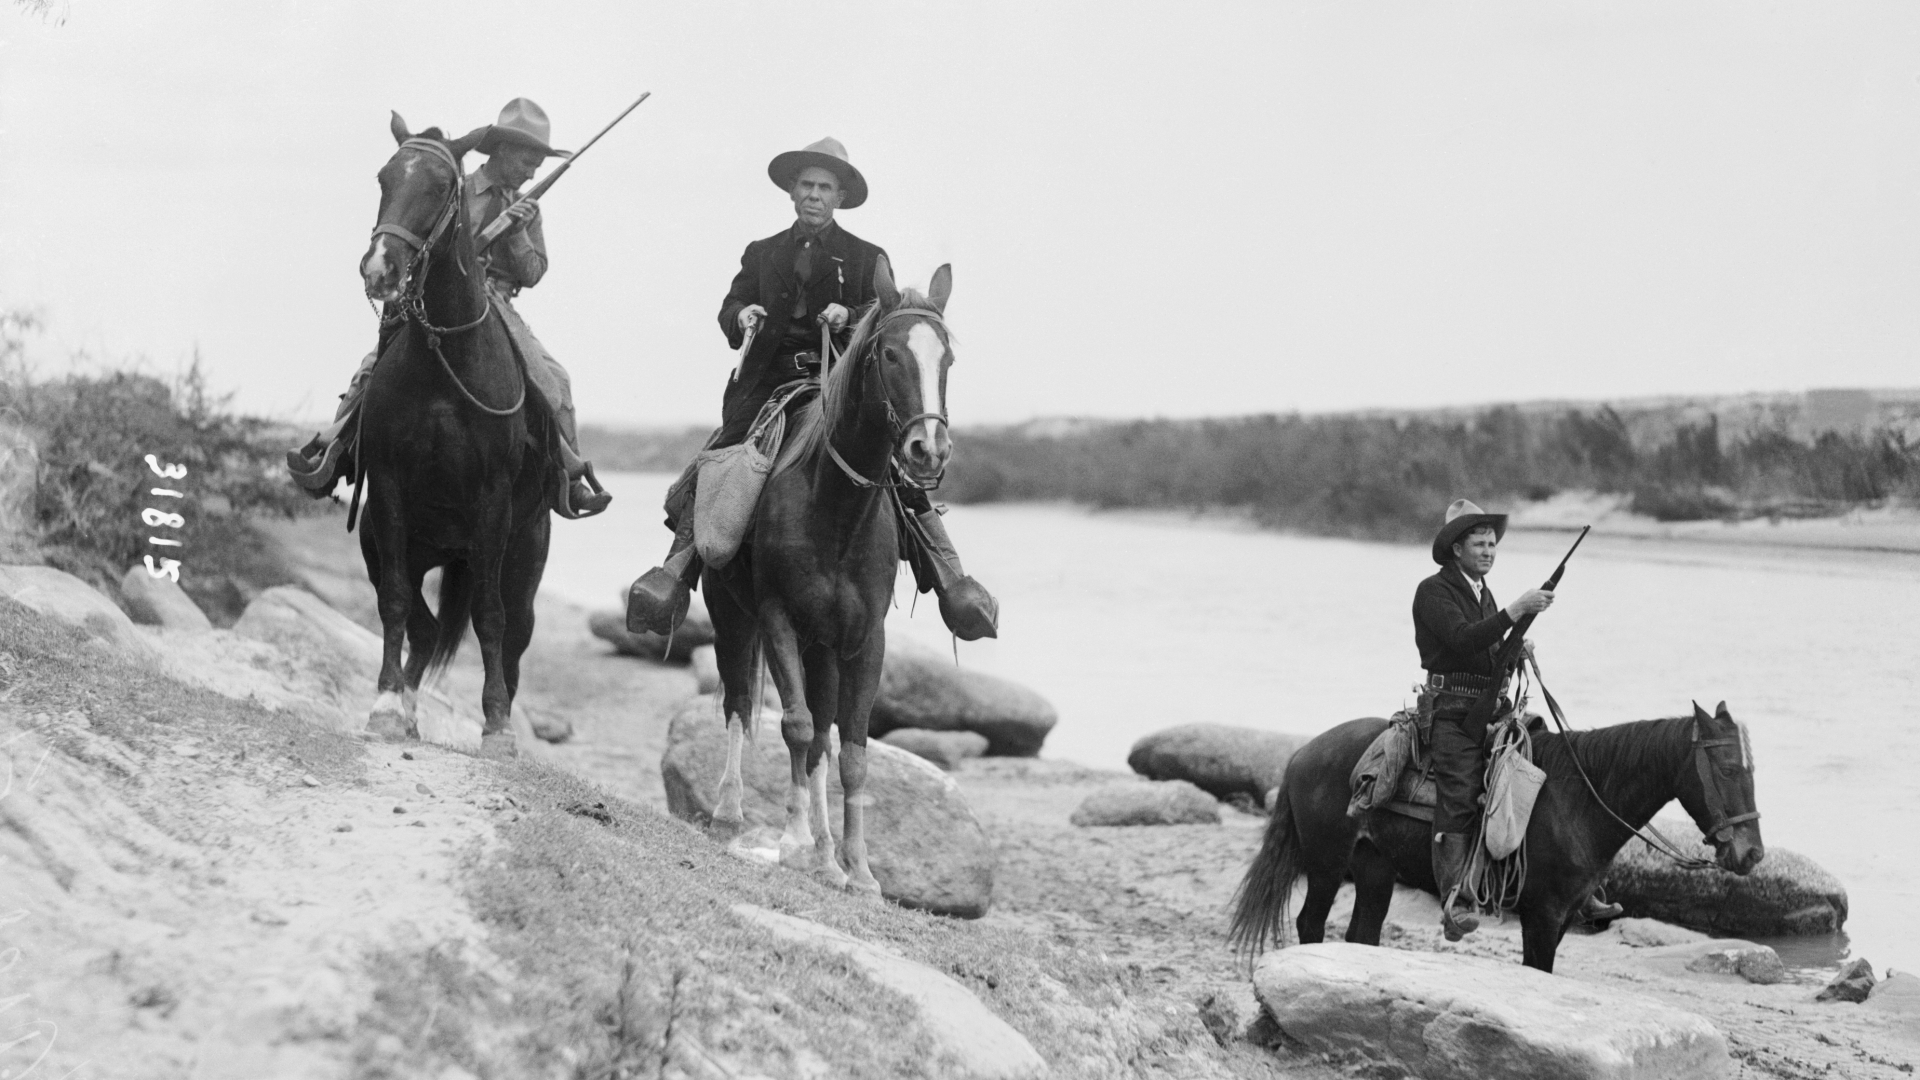 Texas Rangers patrolling the border circa 1915. (Credit: Bettmann Archive/Getty Images)